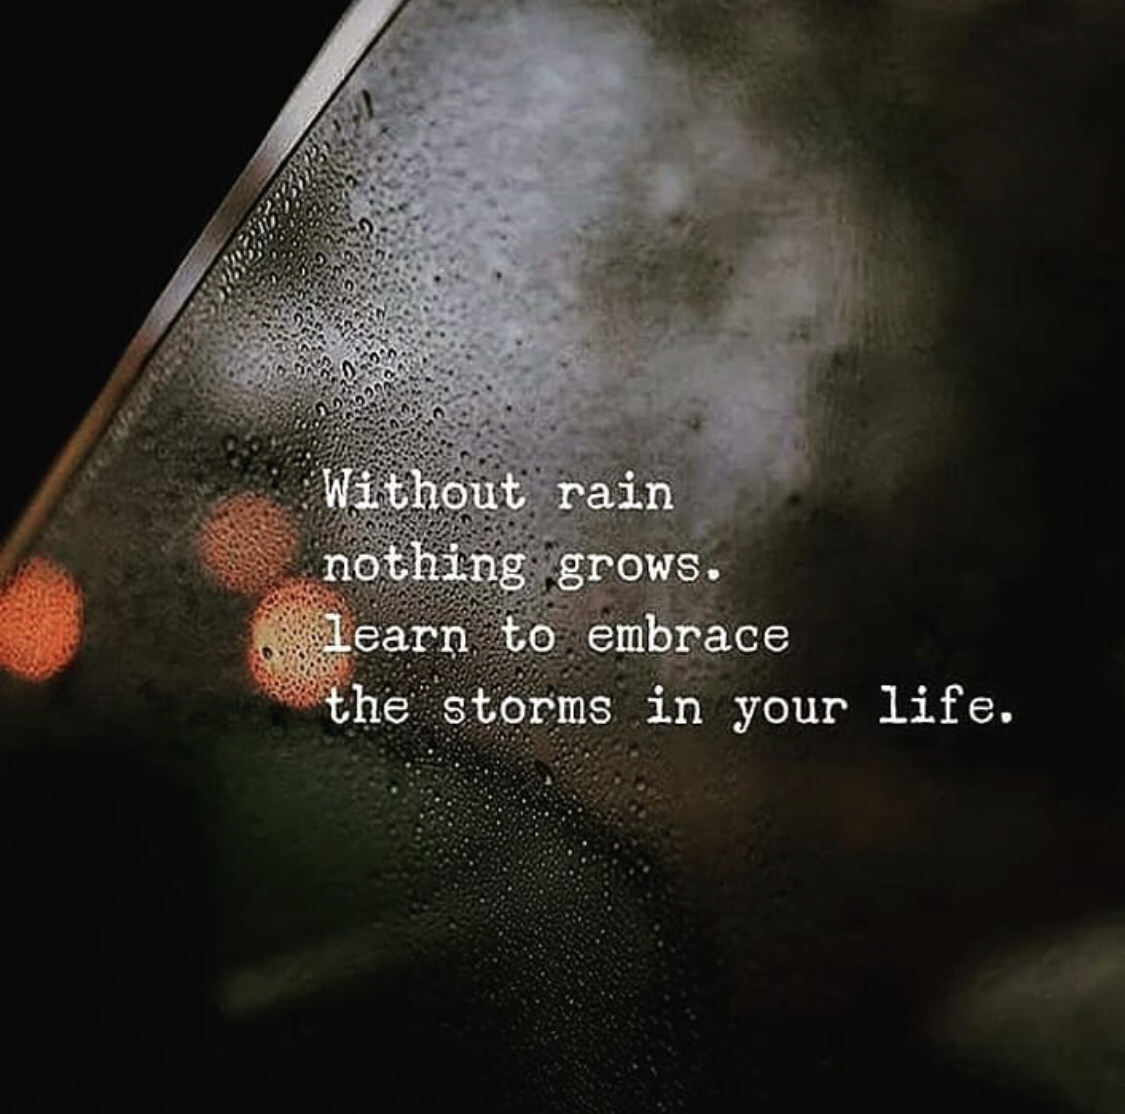 [Image] Embrace your storms.